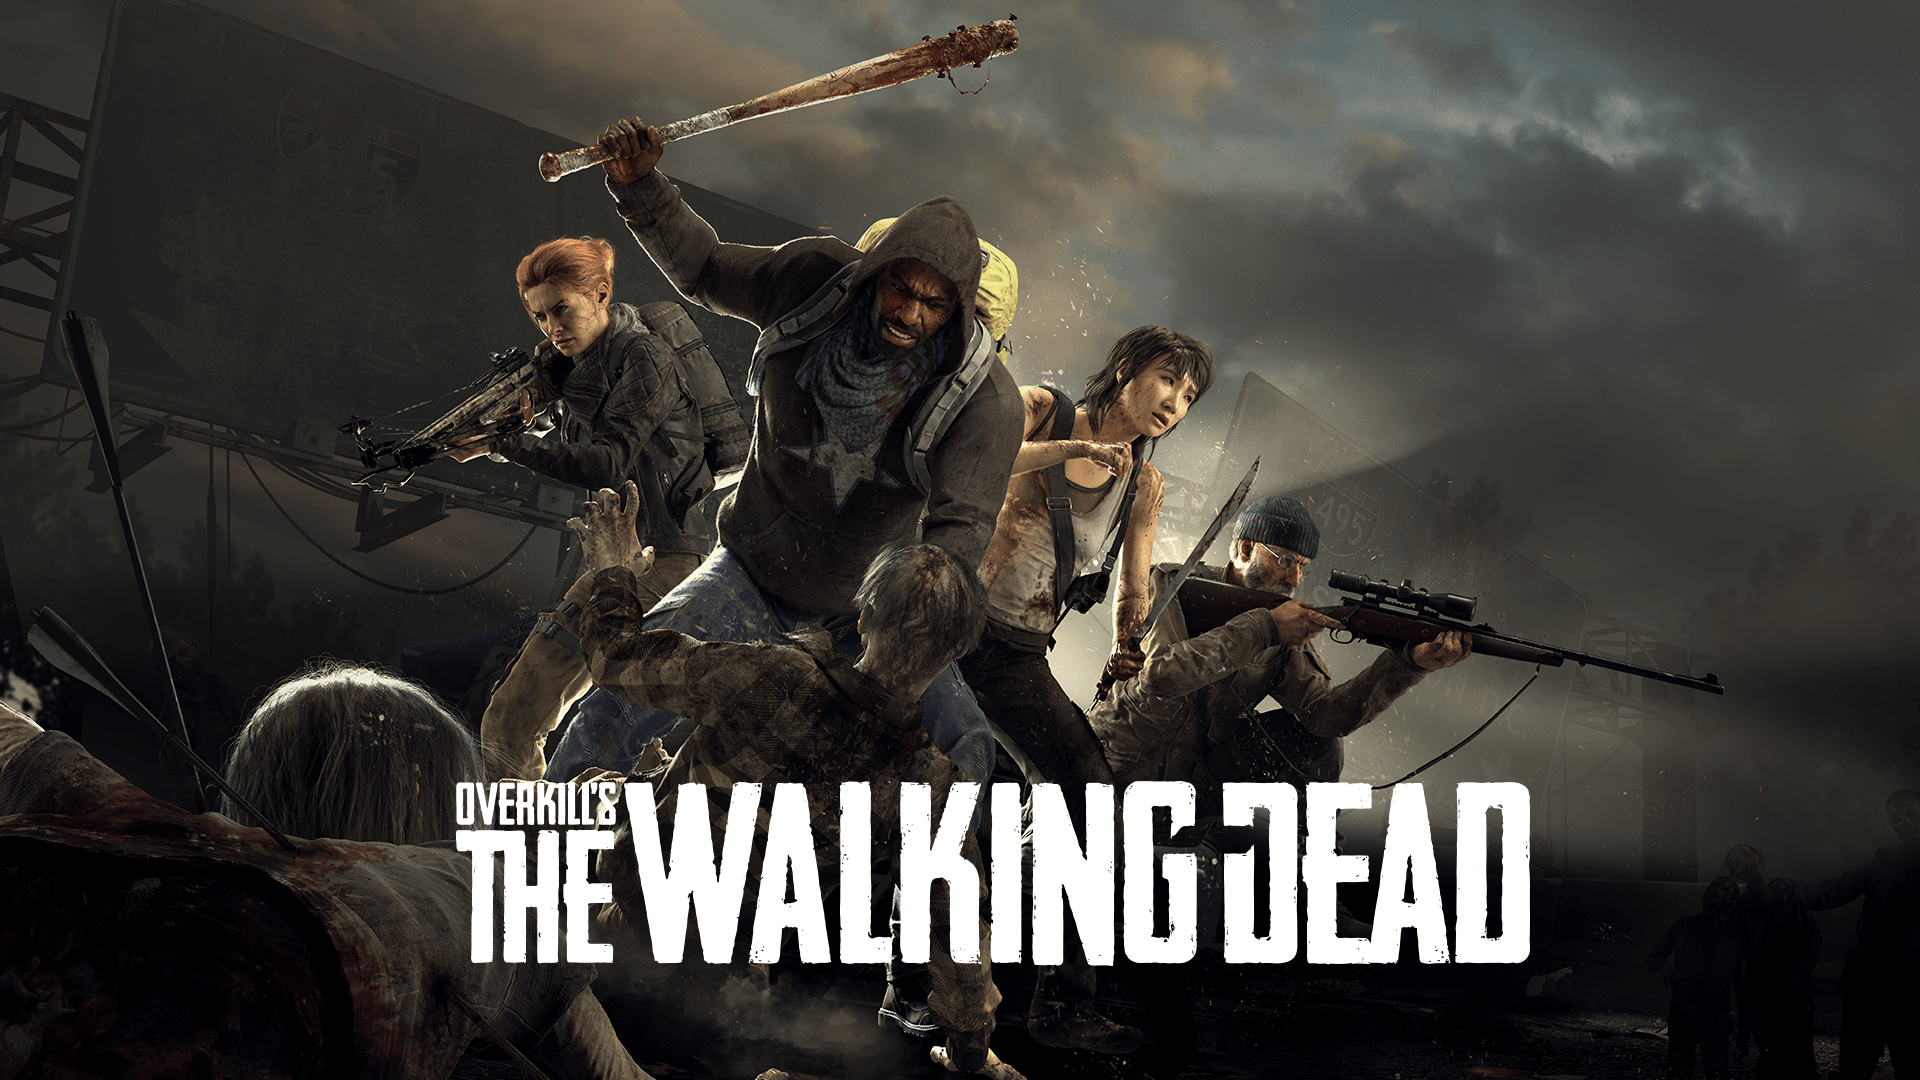 Overkill's the walking dead by overkill